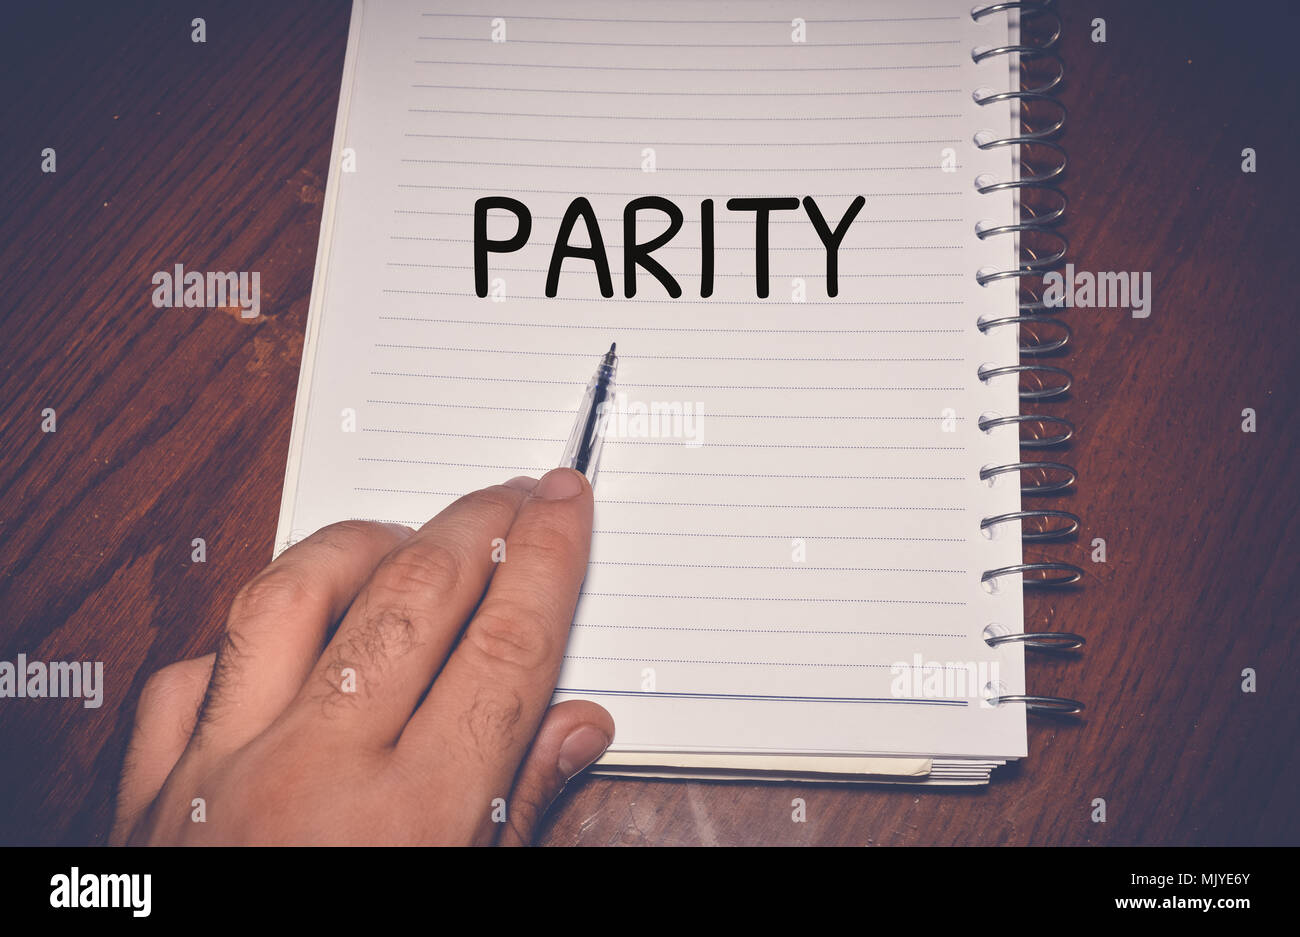 Parity word written on white paper - Stock Image